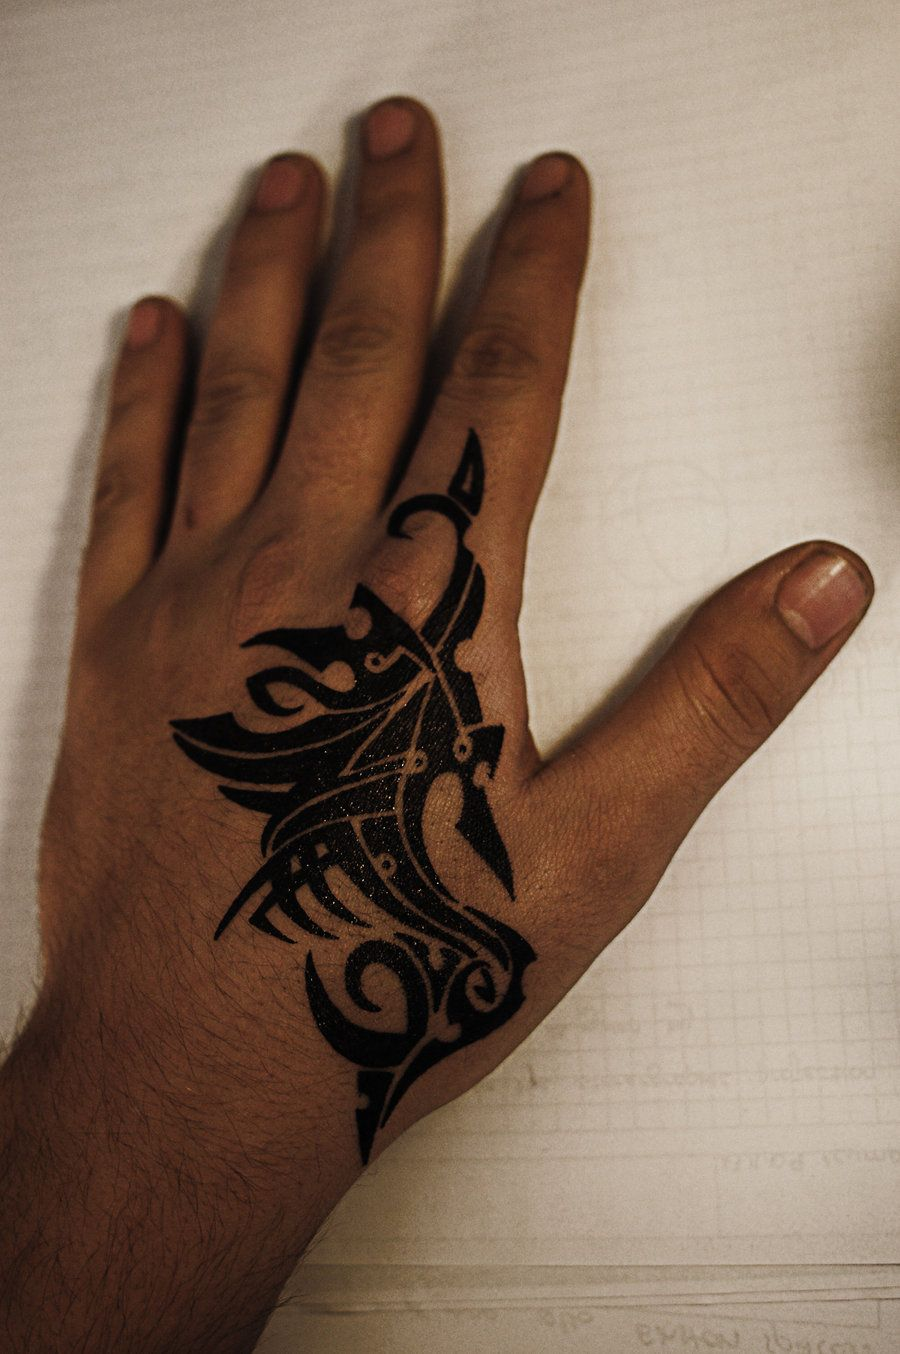 Trendy Hand Tattoo Design Ideas For All Ohh My My Hand Tattoos For Guys Tribal Hand Tattoos Small Hand Tattoos